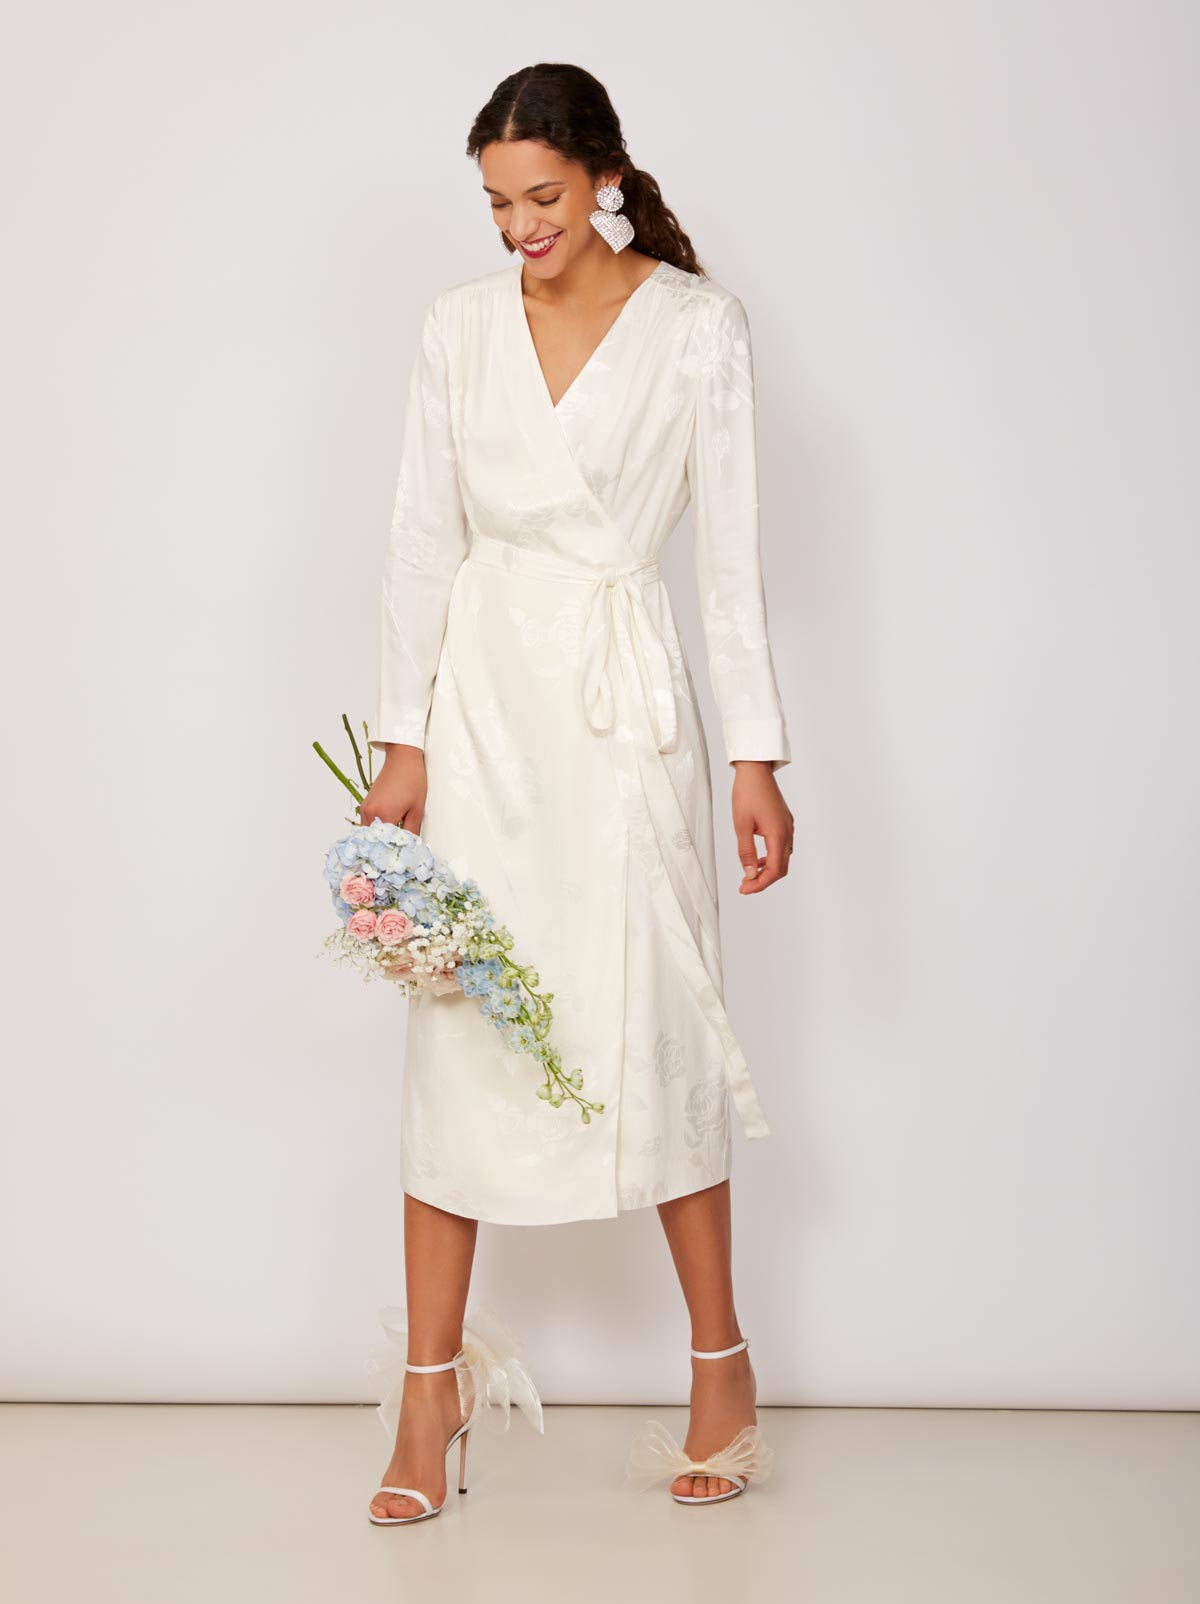 Riley Rose Jacquard Wrap Dress by KITRI Studio